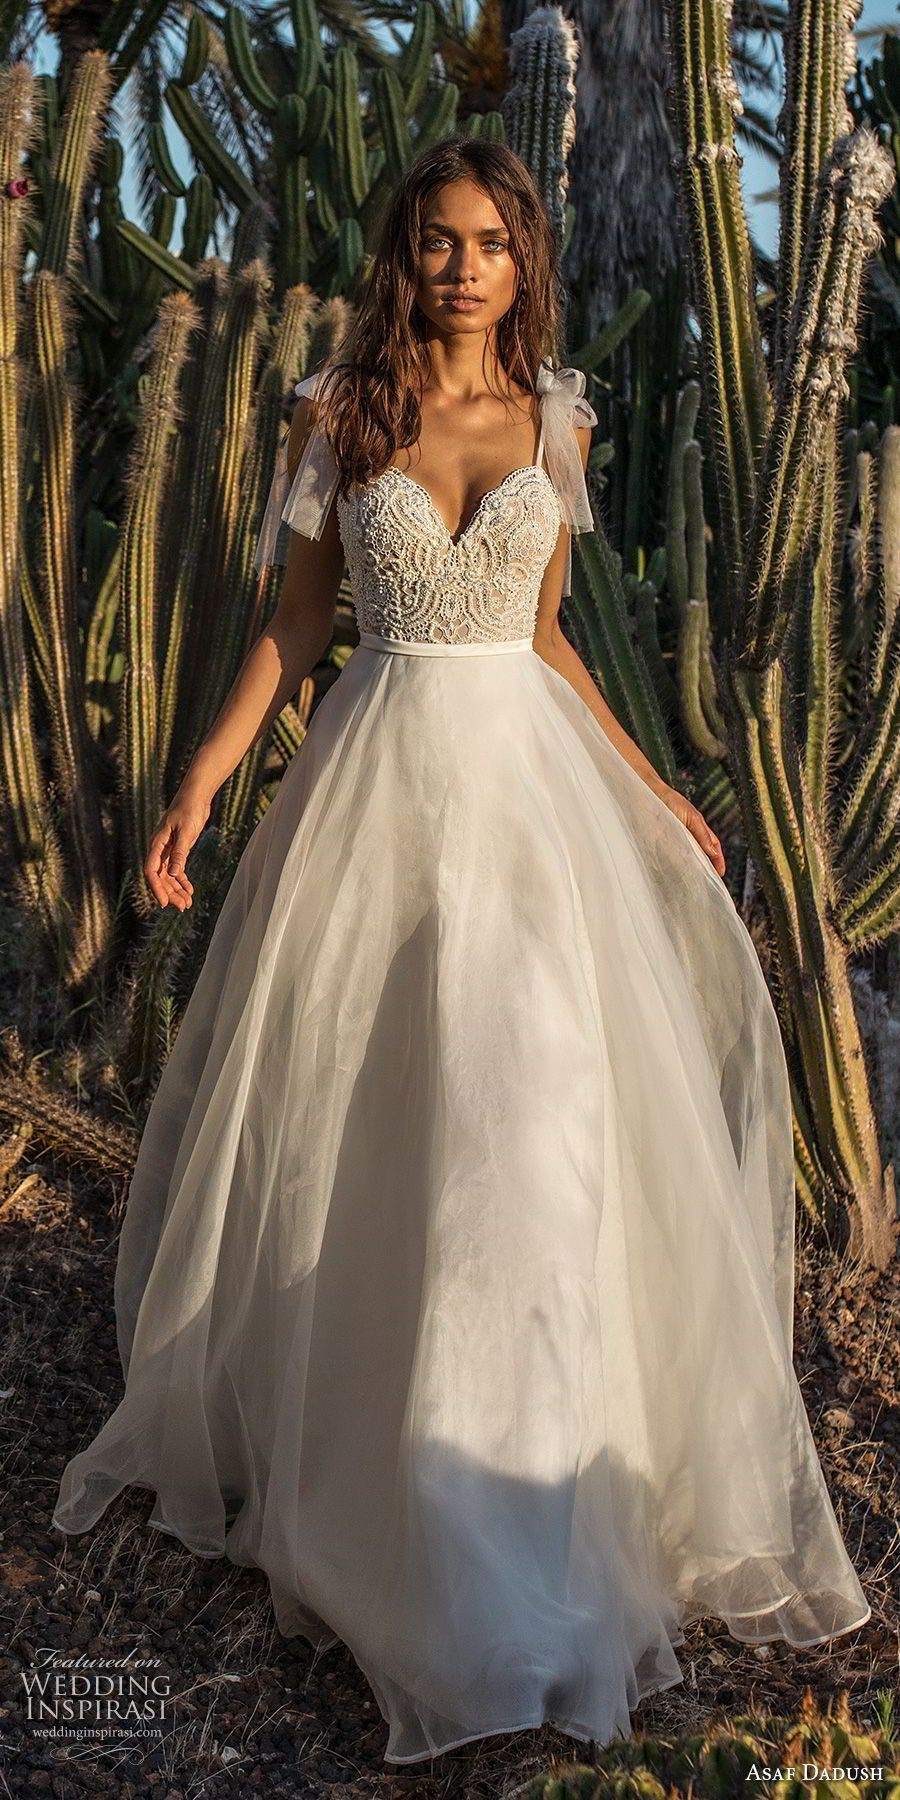 Dress for wedding party 2018  Asaf Dadush  Wedding Dresses  Fashion  Pinterest  Wedding